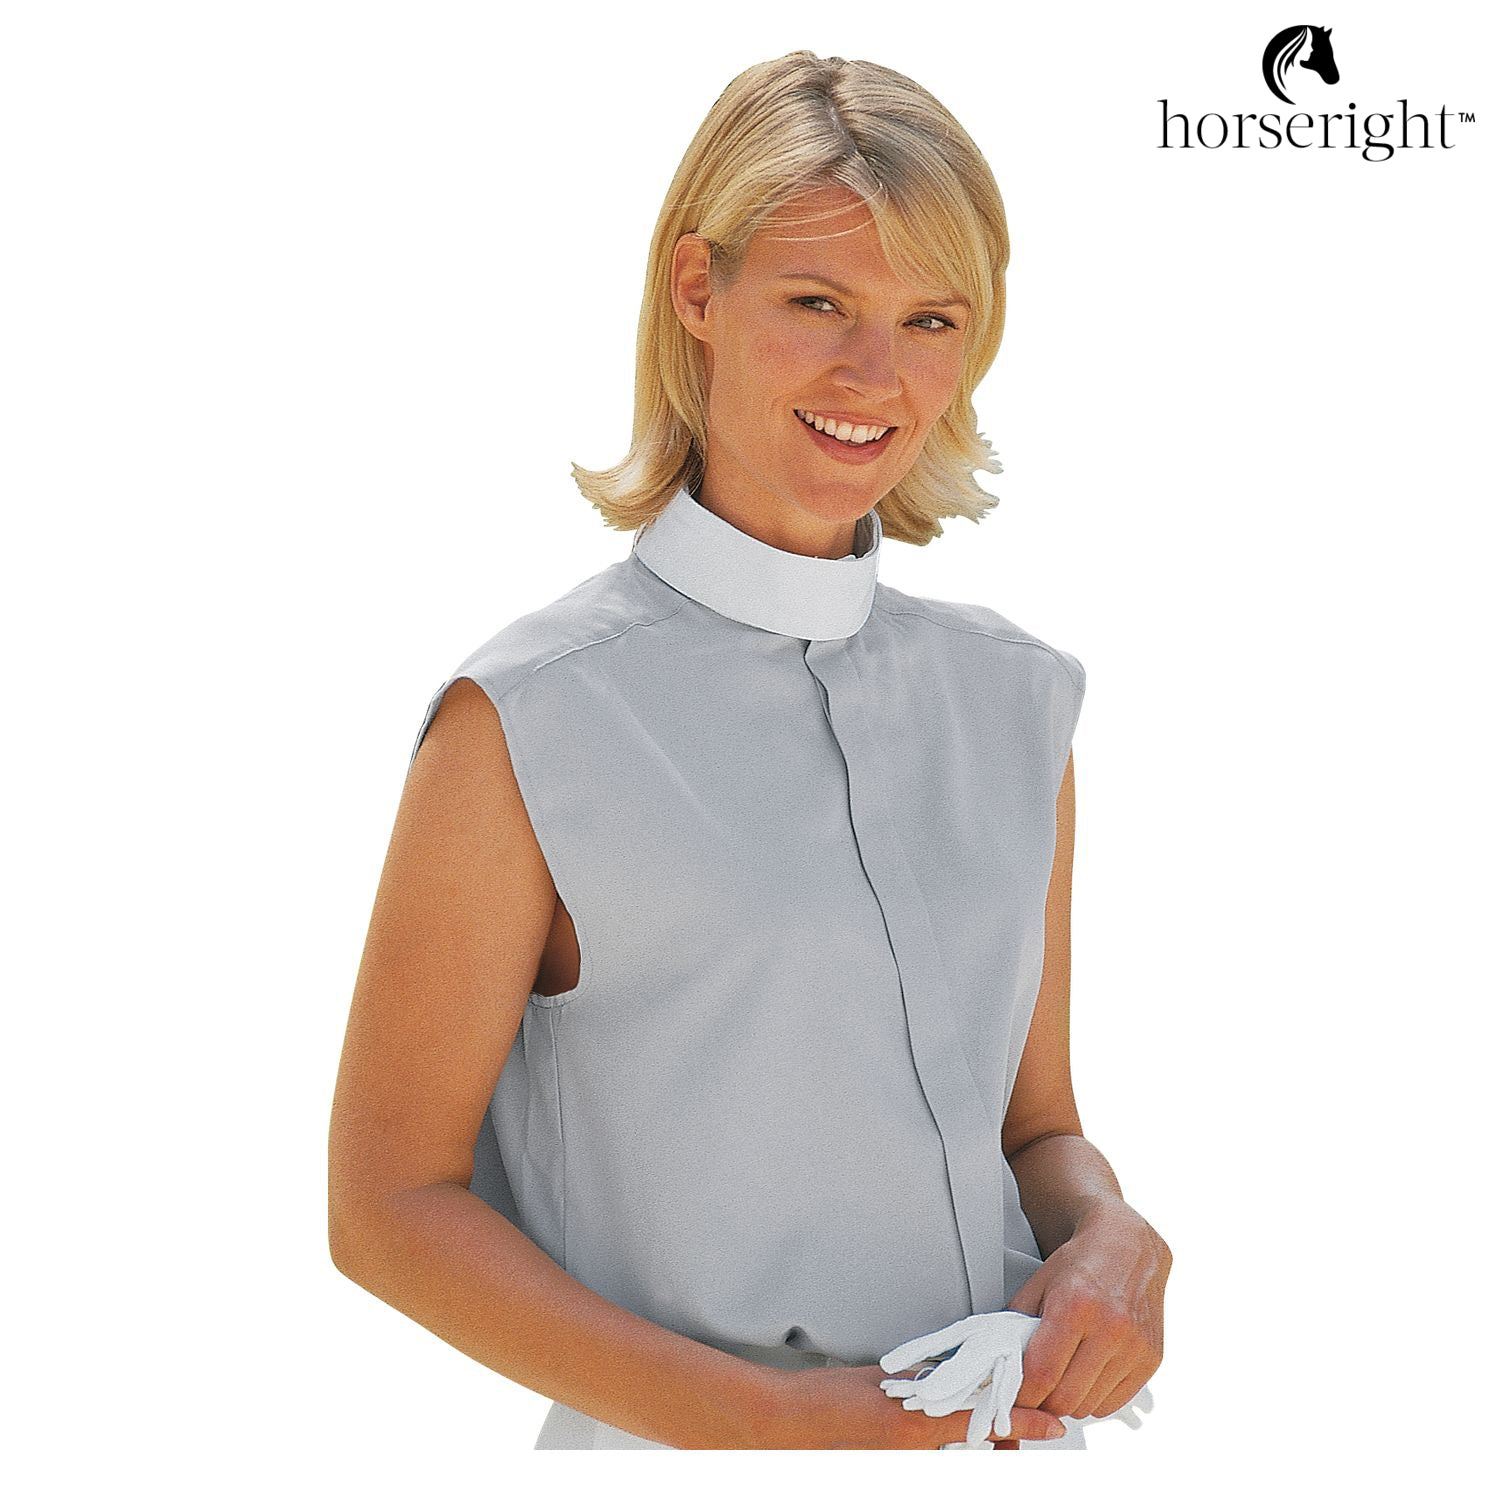 Black Forest Women's Riding Blouse With Stand-Up Collar